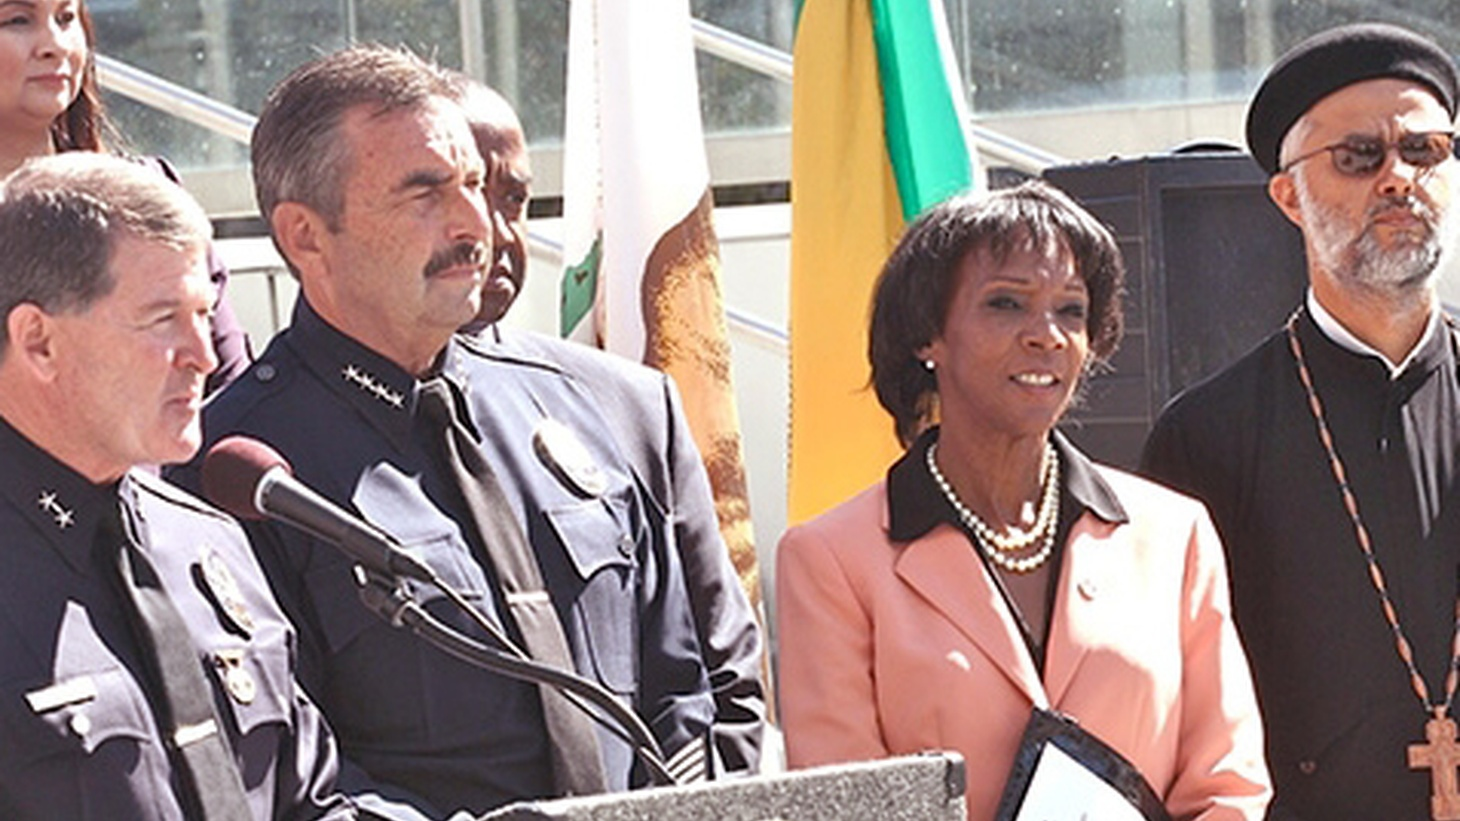 LA County District Attorney Jackie Lacey faces no credible challenger yet in this year's bid for re-election, but she is facing increased political pressure. LAPD Chief Charlie Beck wants her to file charges against one of his own officers in a controversial killing — an action he's never taken before. Political activists are waiting for her decision.